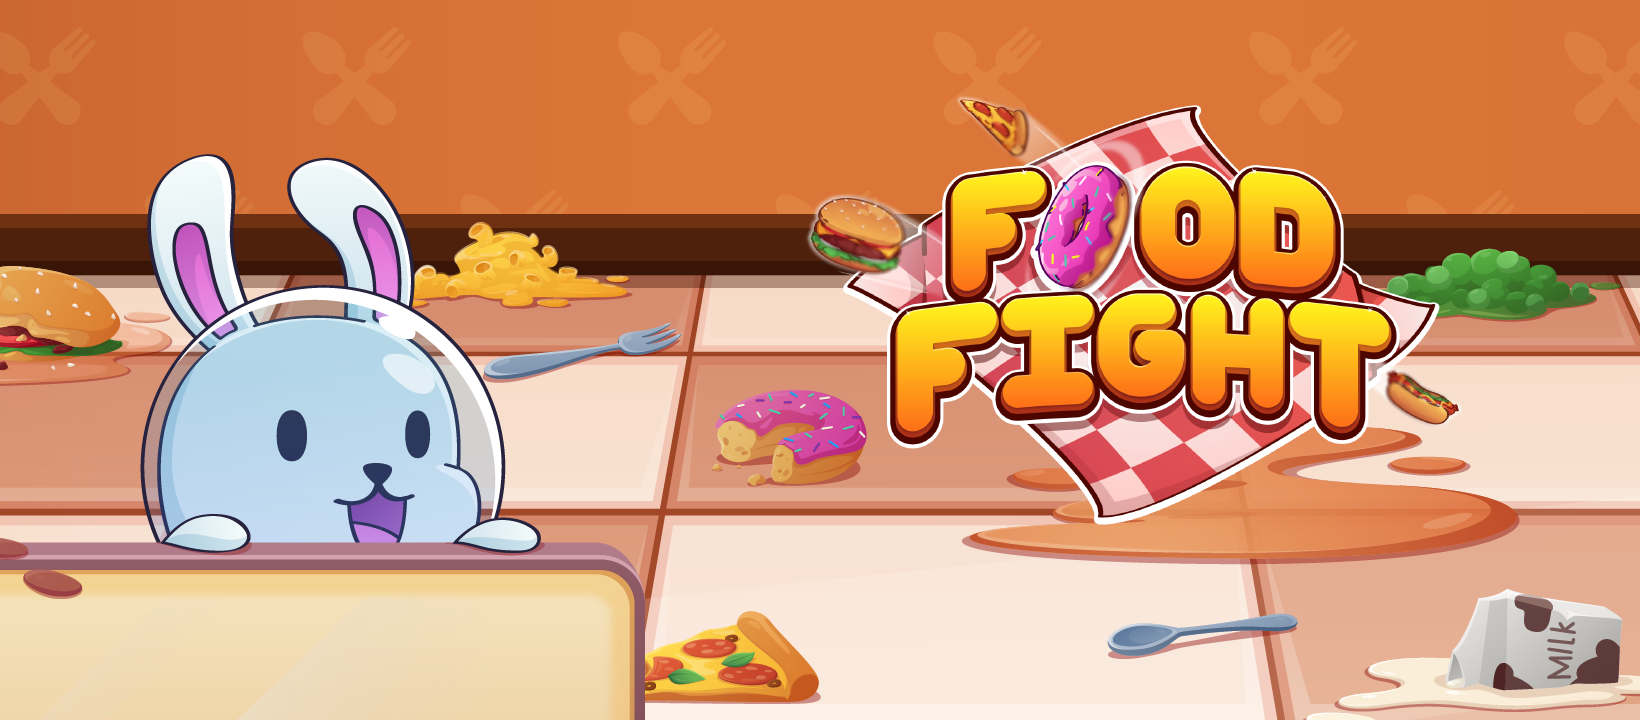 Food Fight Main Banner